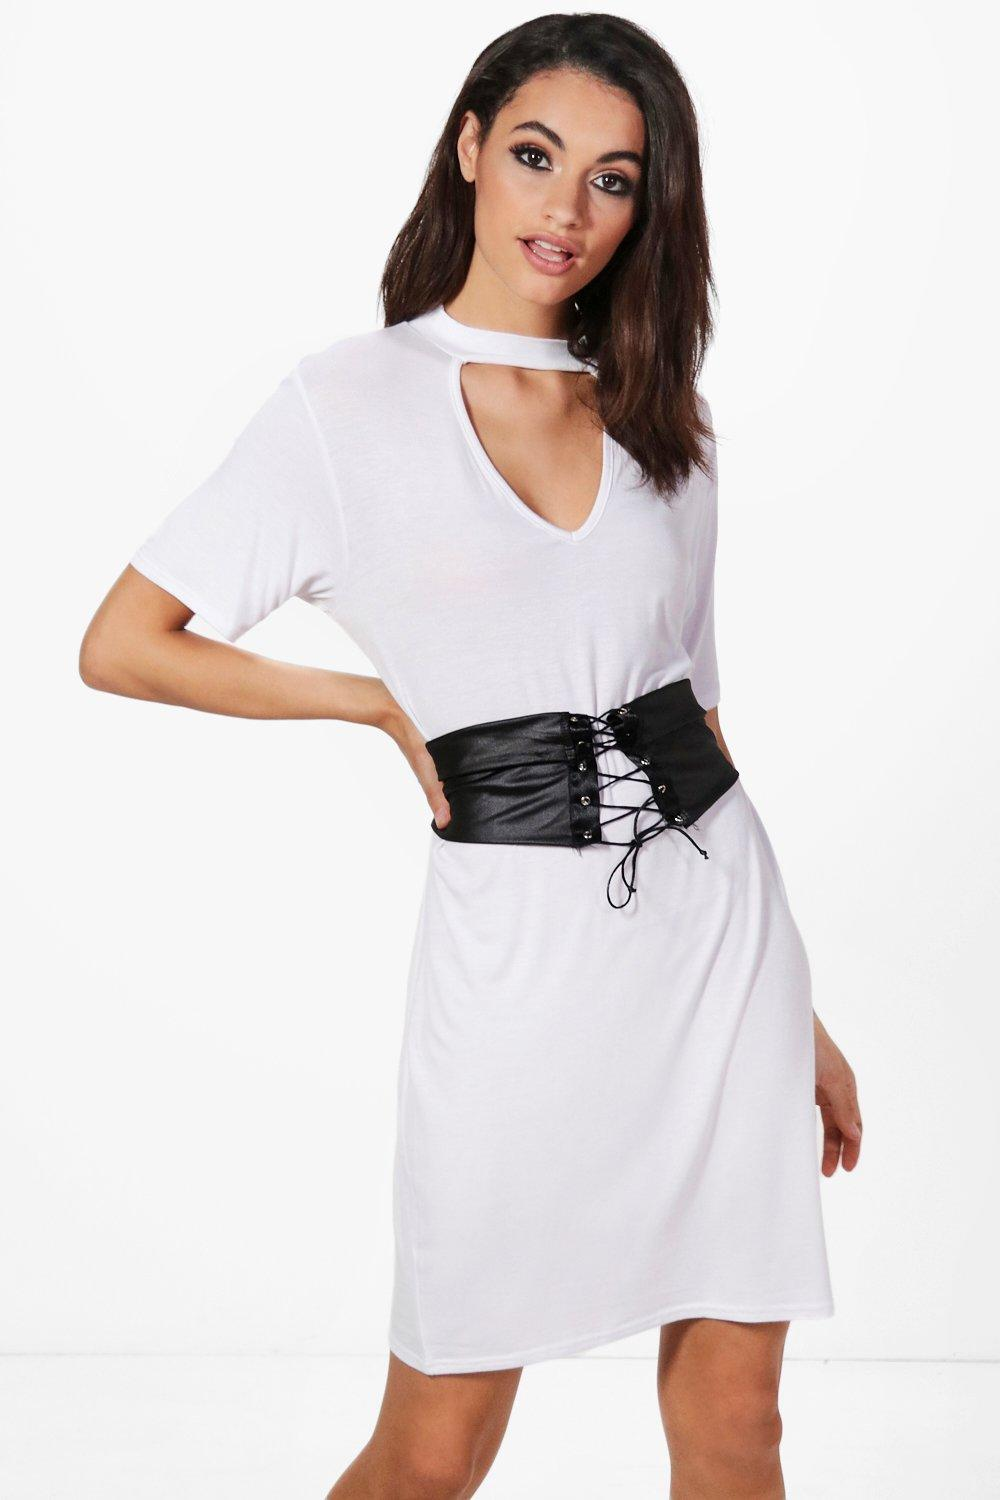 d2643e1079df Womens Hilary Choker Corset Belt 2 in 1 T-Shirt Dress. Hover to zoom